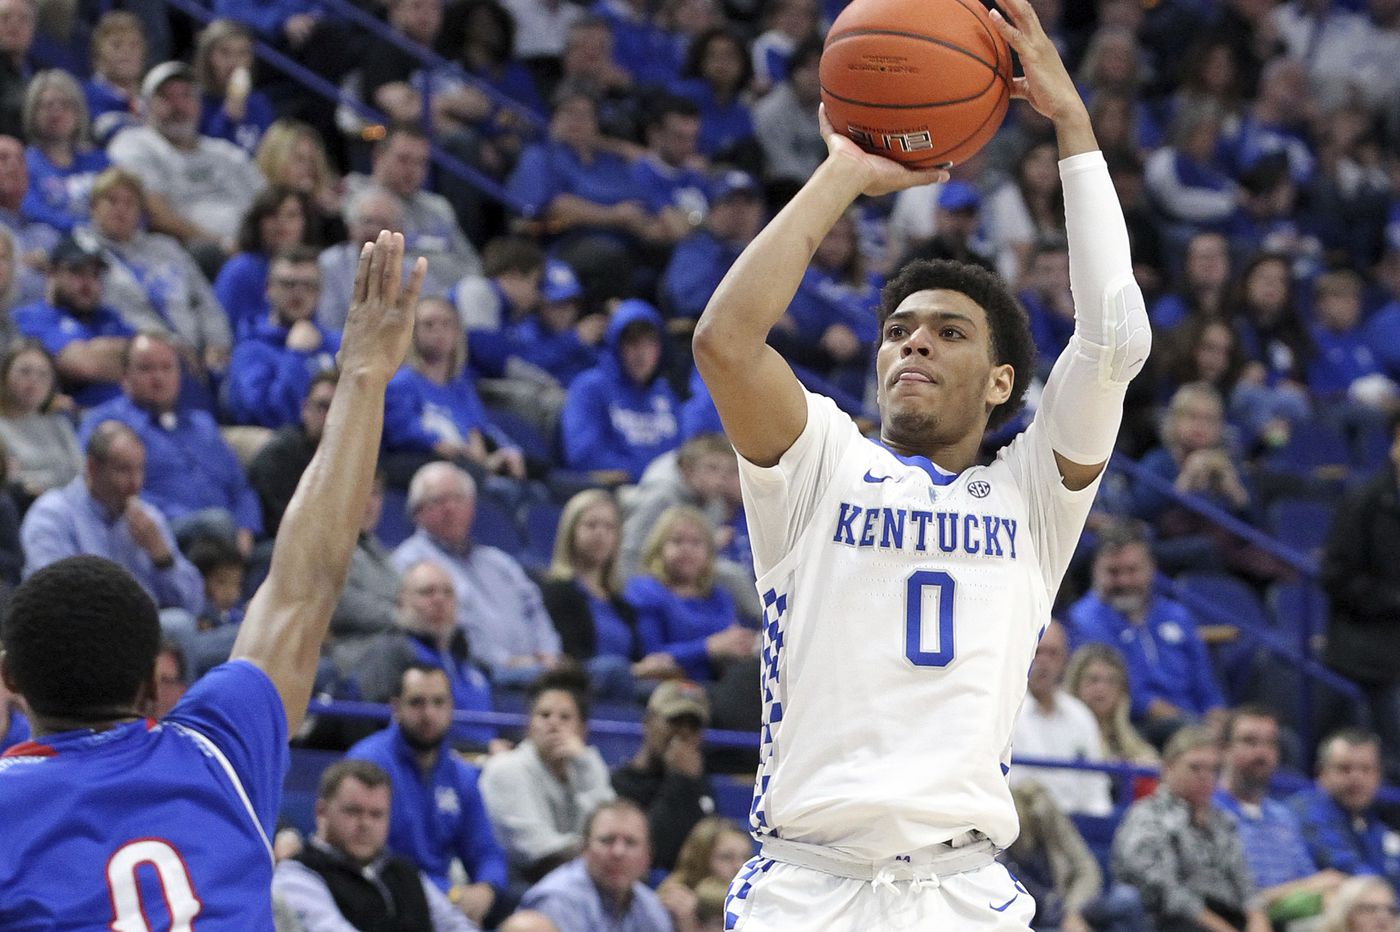 Philly high school star Quade Green transferring from Kentucky